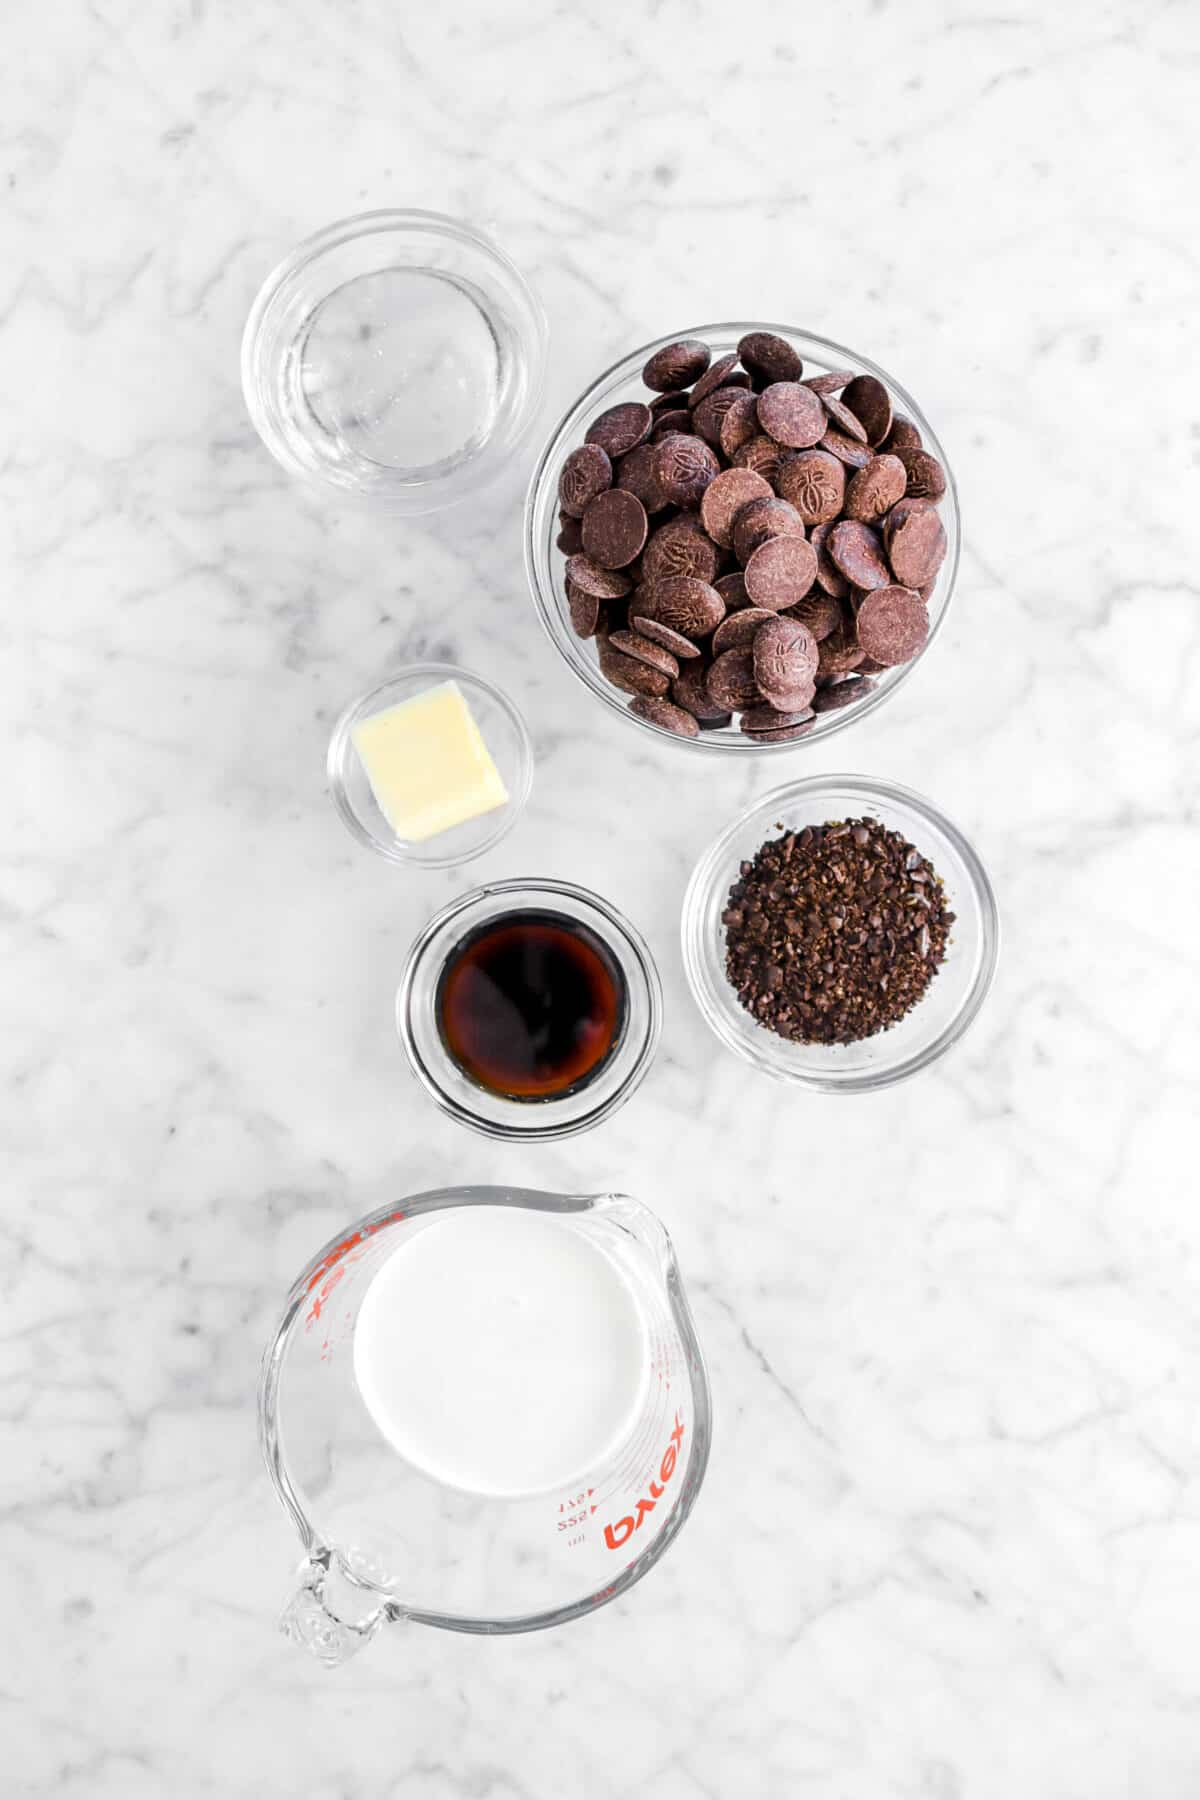 corn syrup, chocolate chips, butter, coffee liqueur, ground coffee beans, and cream